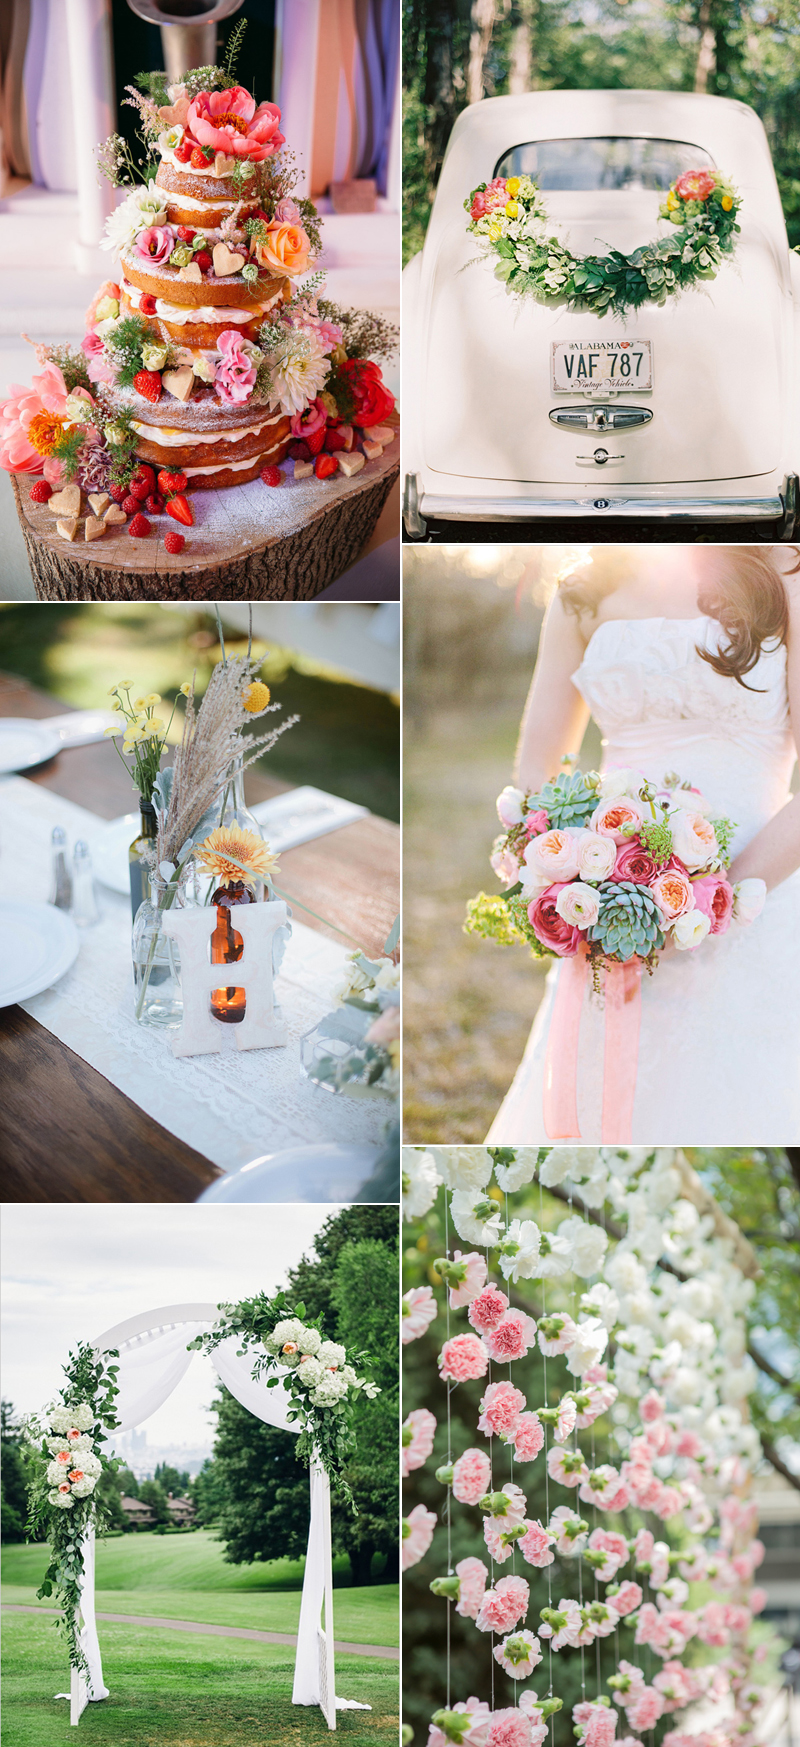 Inspiration Flowers Wedding | we love handmade